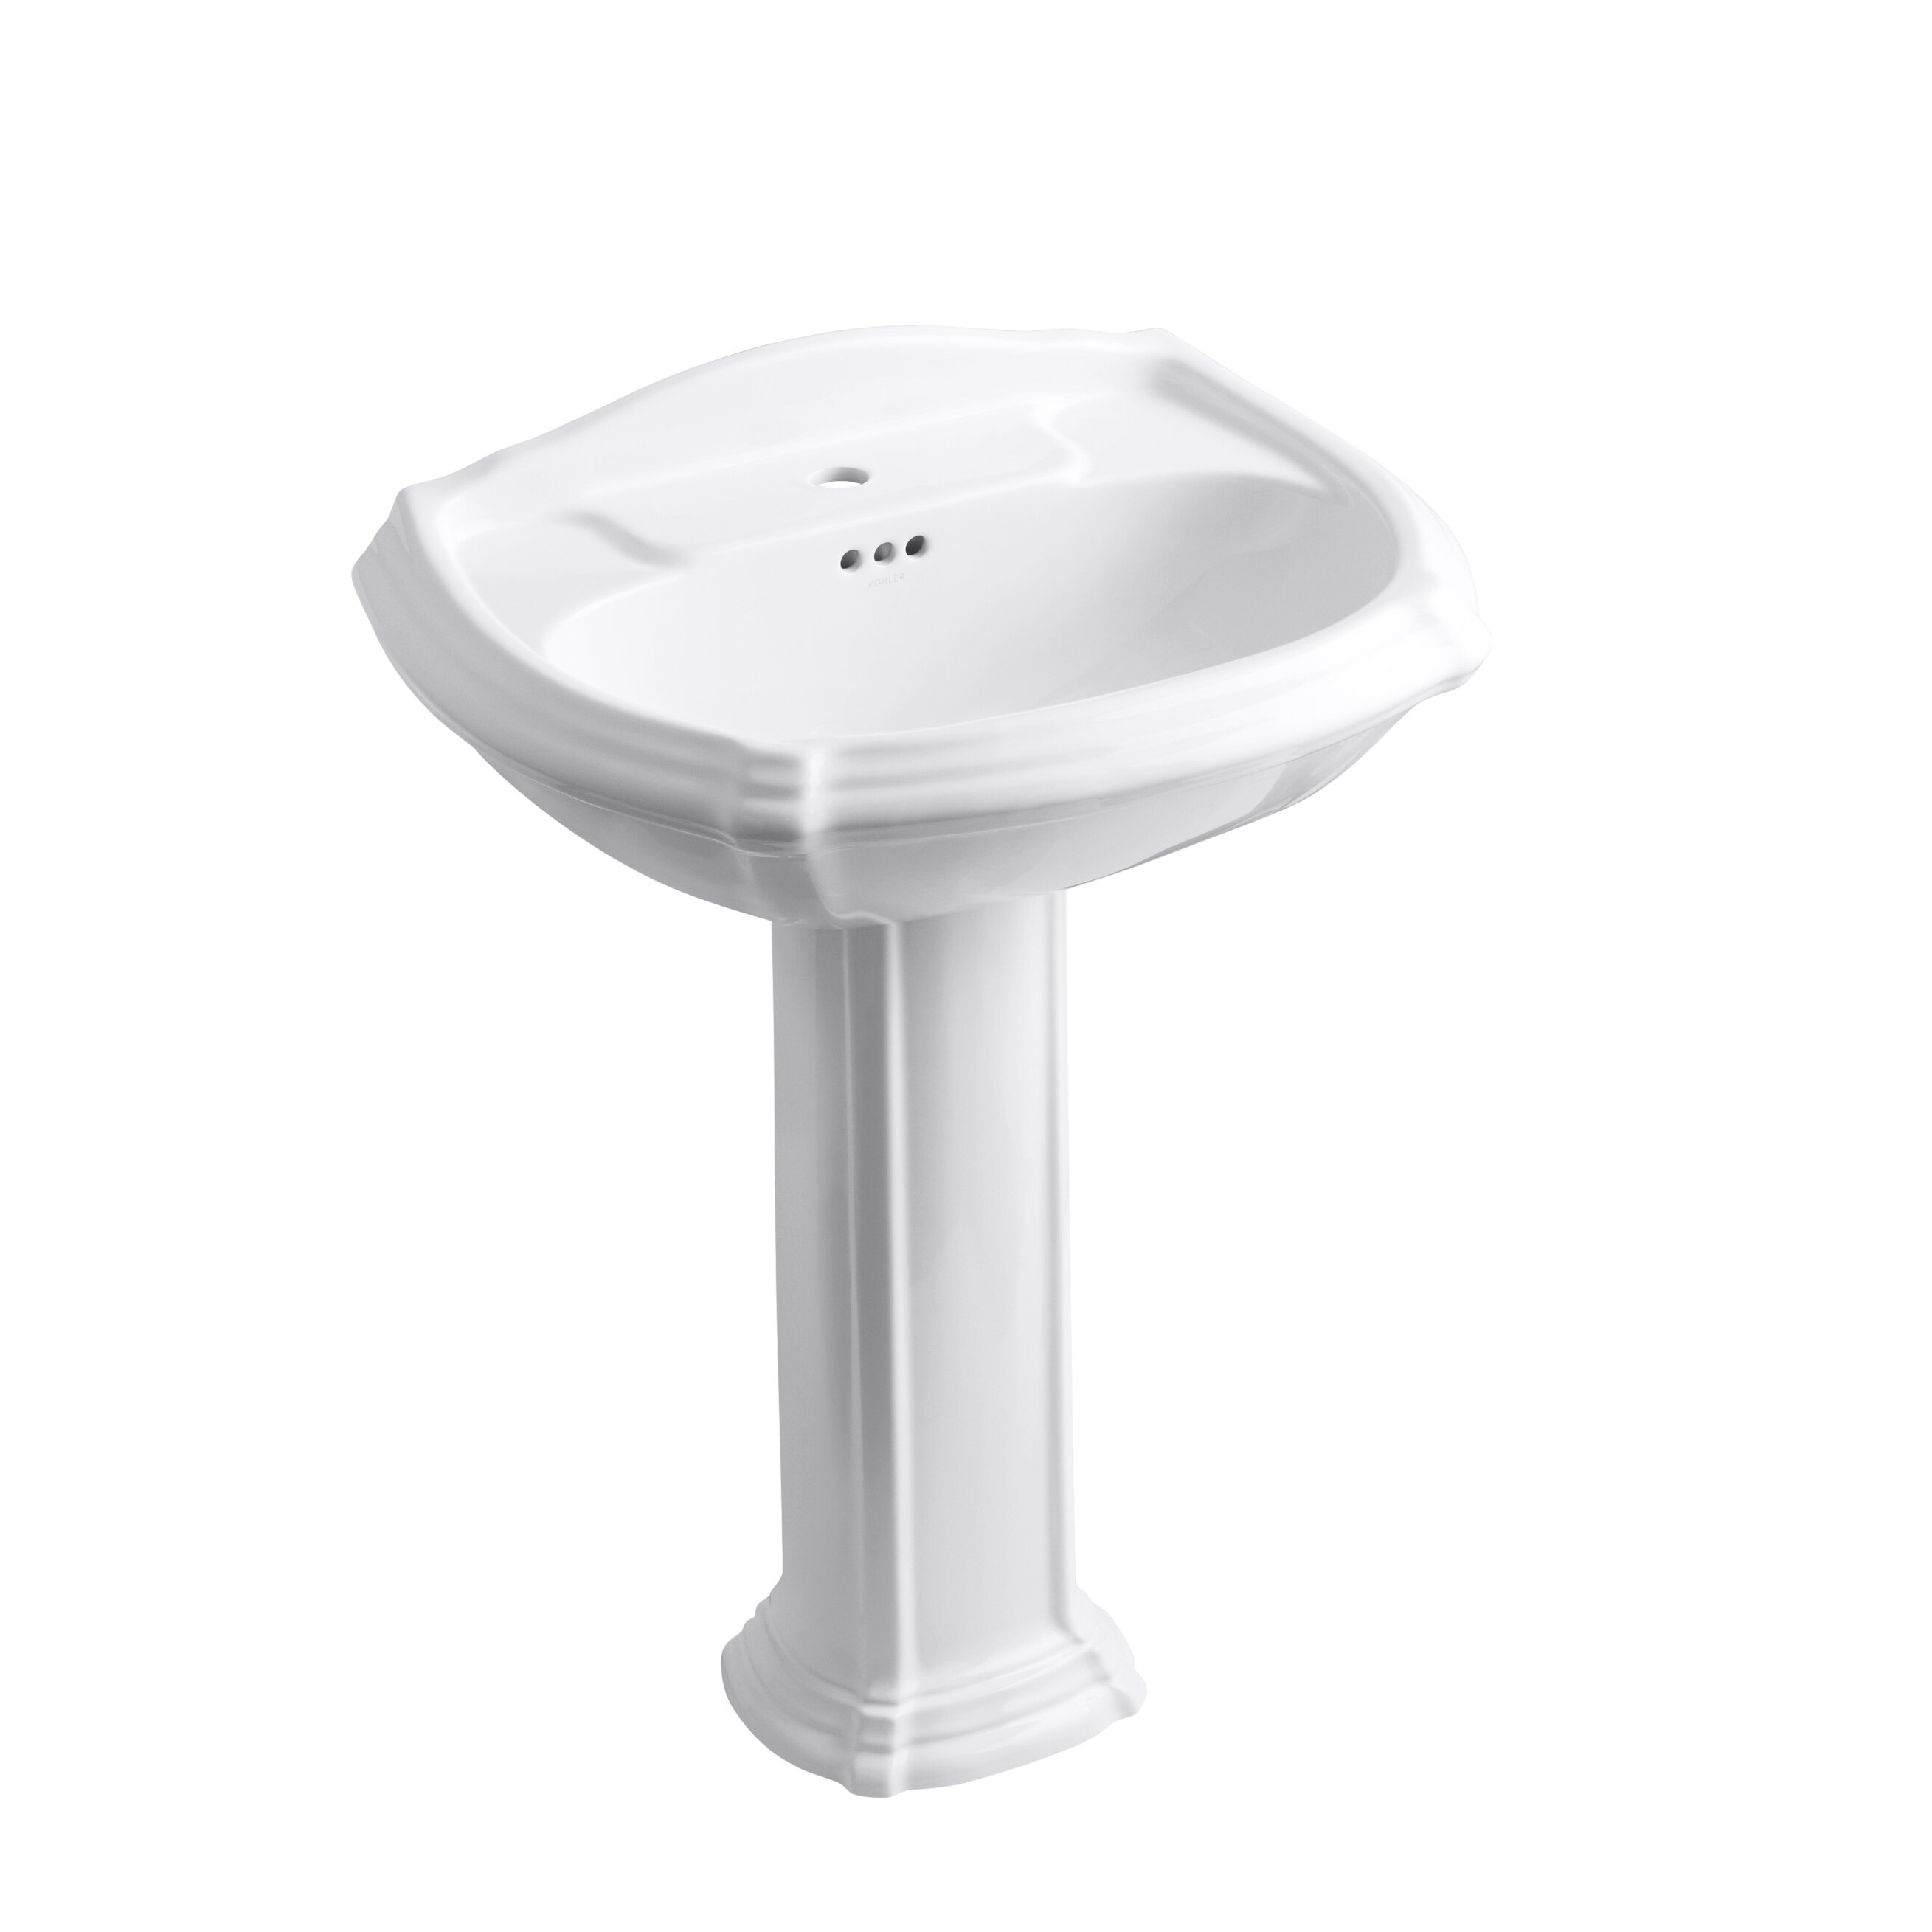 Kohler Portrait Pedestal Bathroom Sink & Reviews | Wayfair Supply